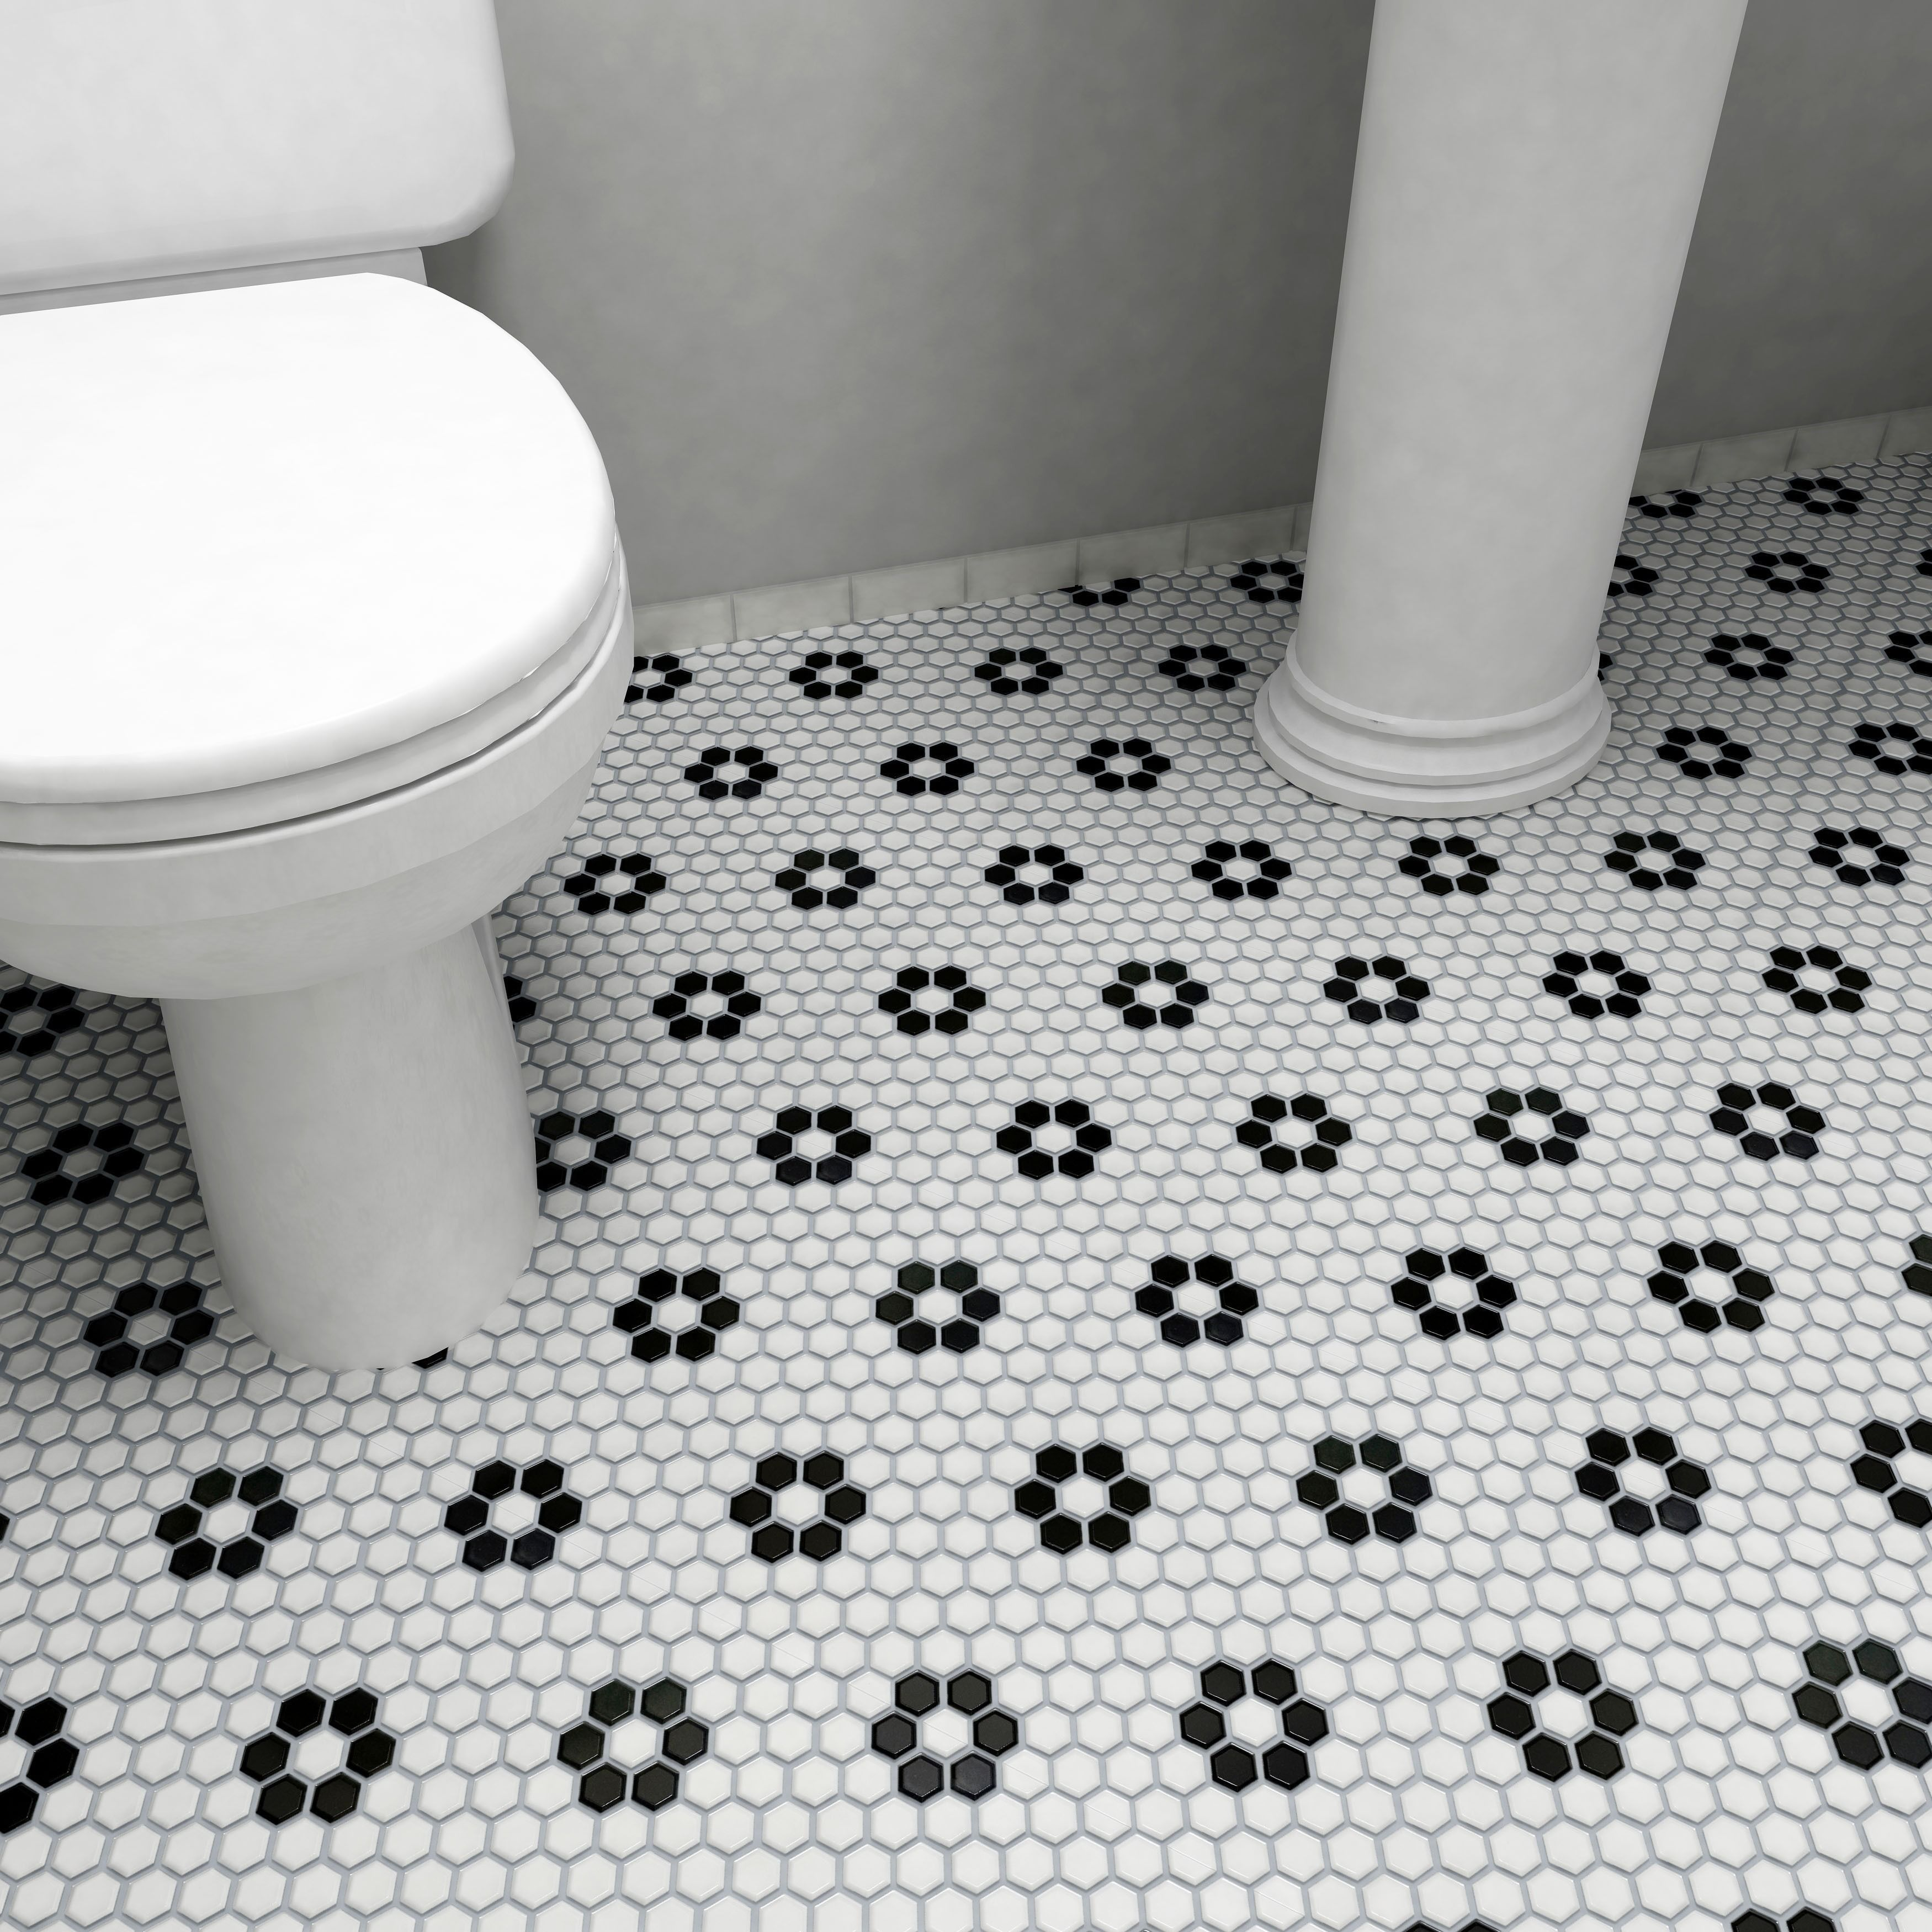 Reminiscent of victorian era tile mosaics this somertile tile set reminiscent of victorian era tile mosaics this somertile tile set features a smooth dailygadgetfo Images